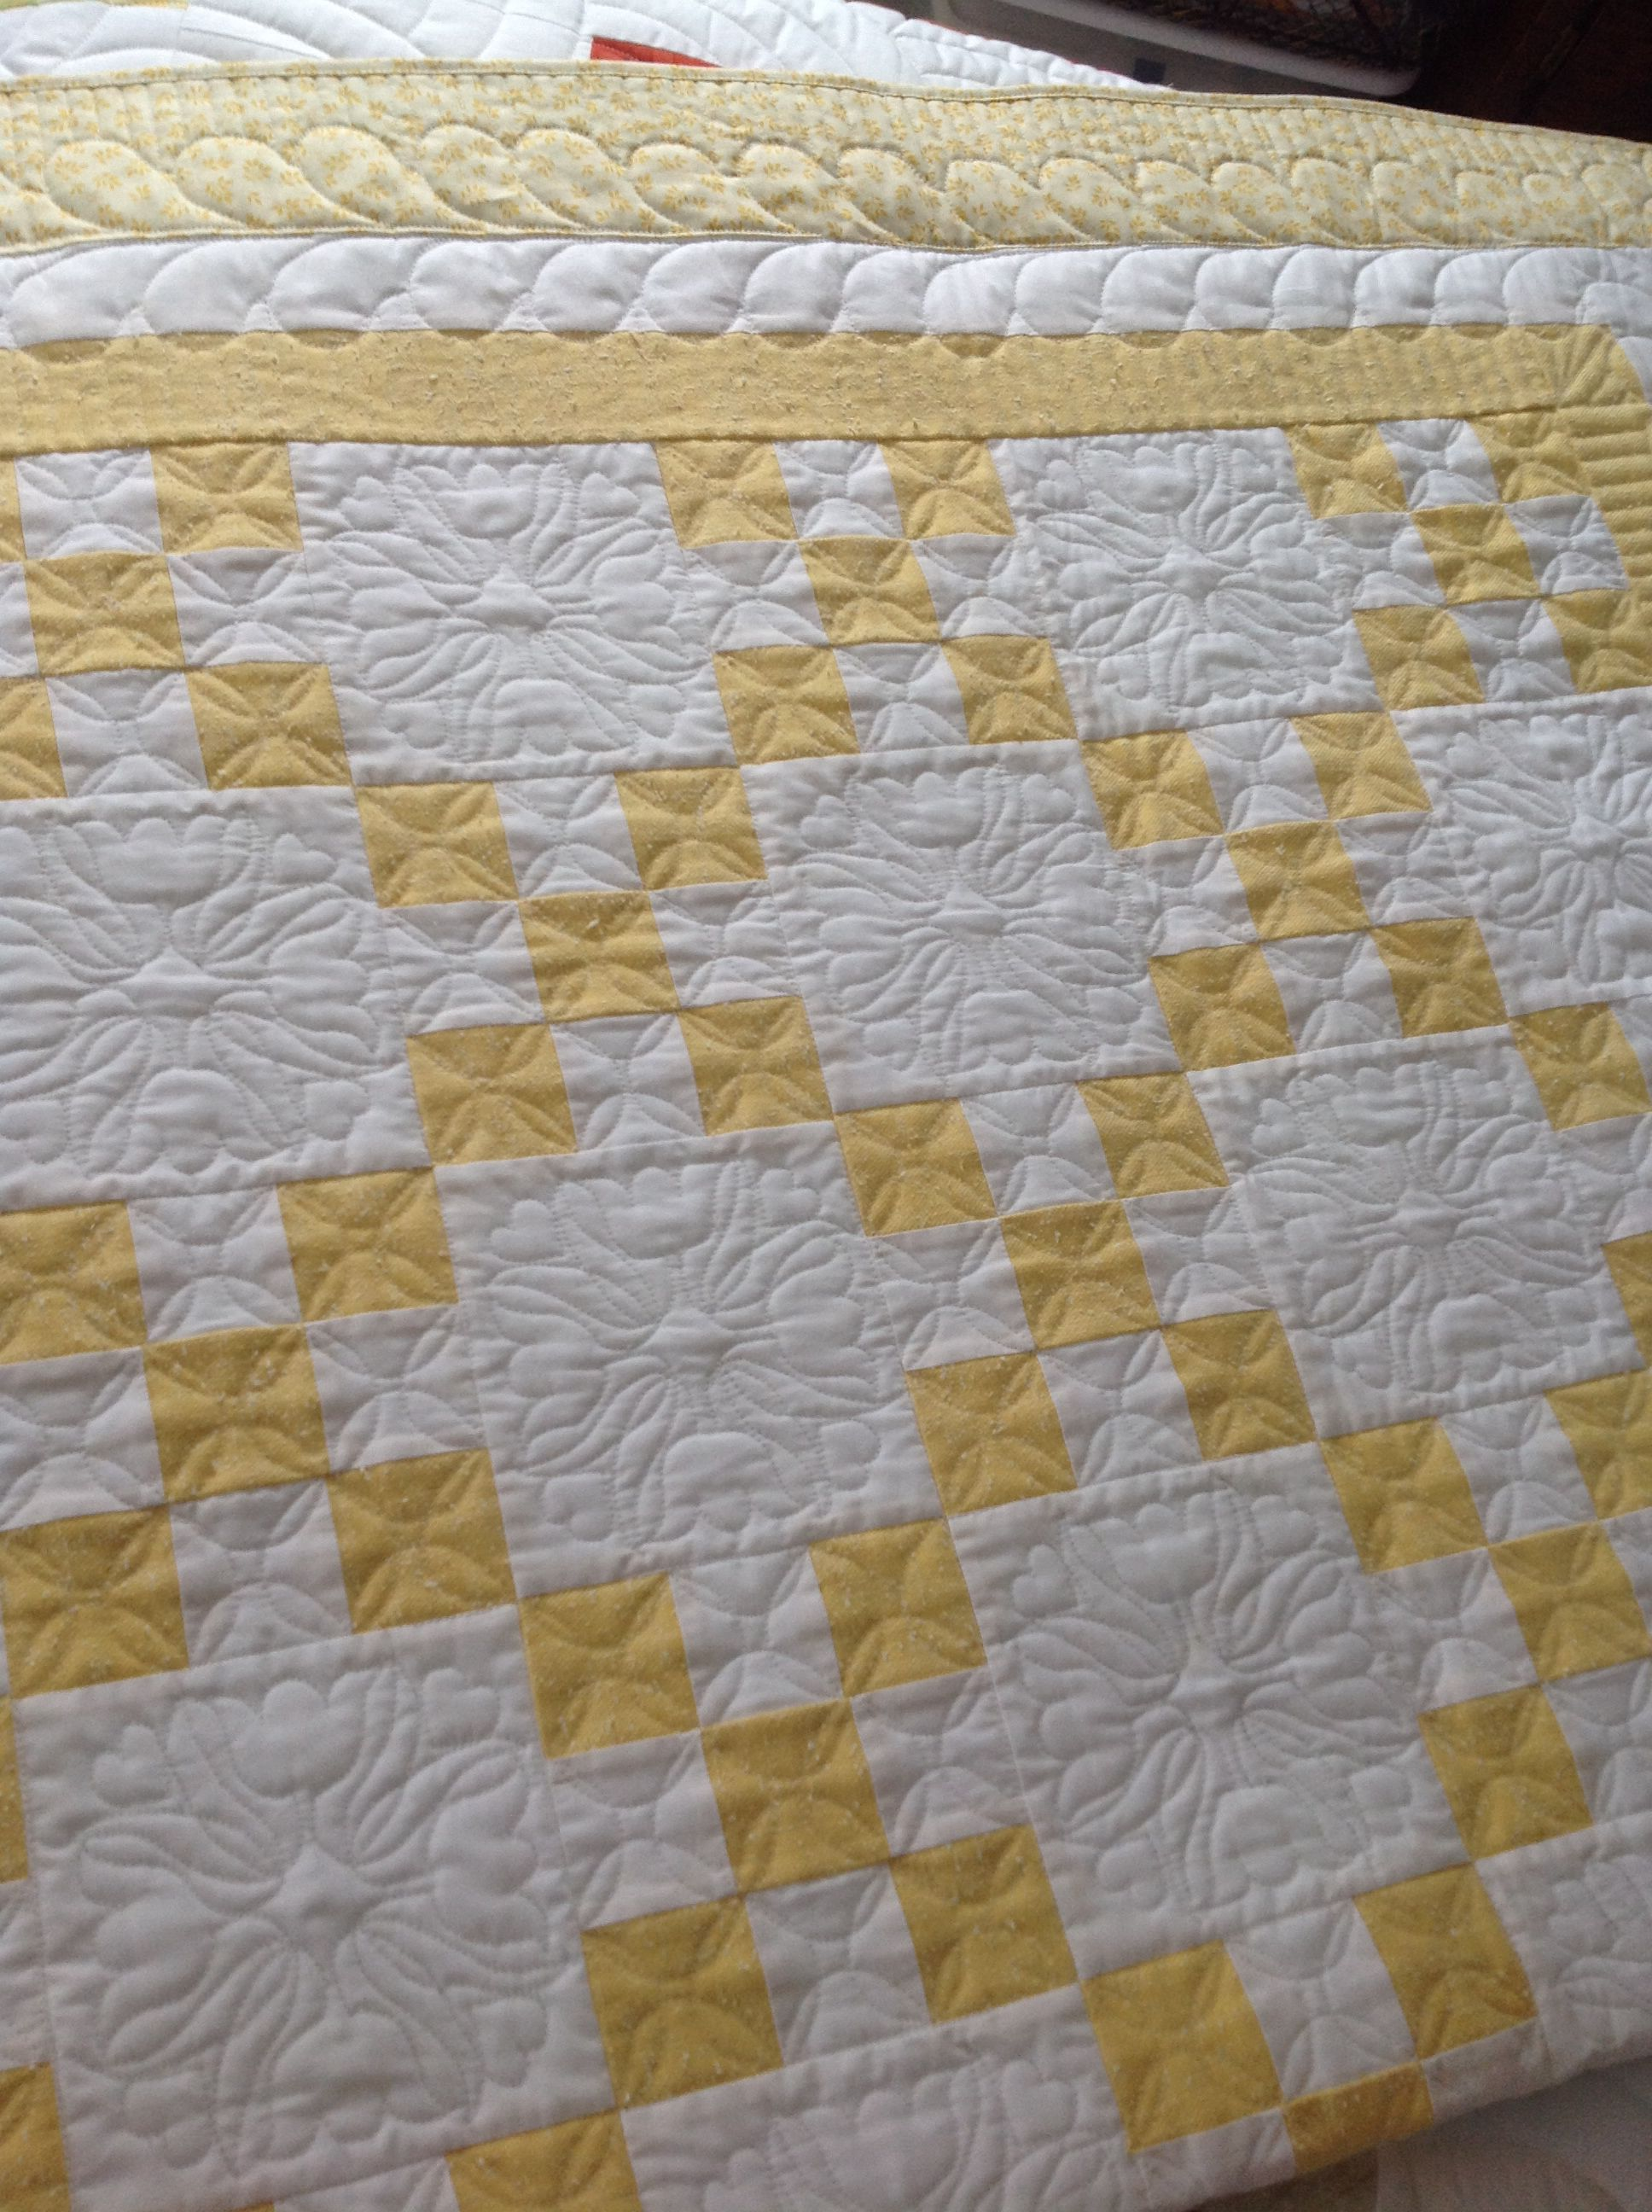 Single Irish chain in butter yellow/white two color quilt full size with tulip quilting motifs and feather border, I'm learning.